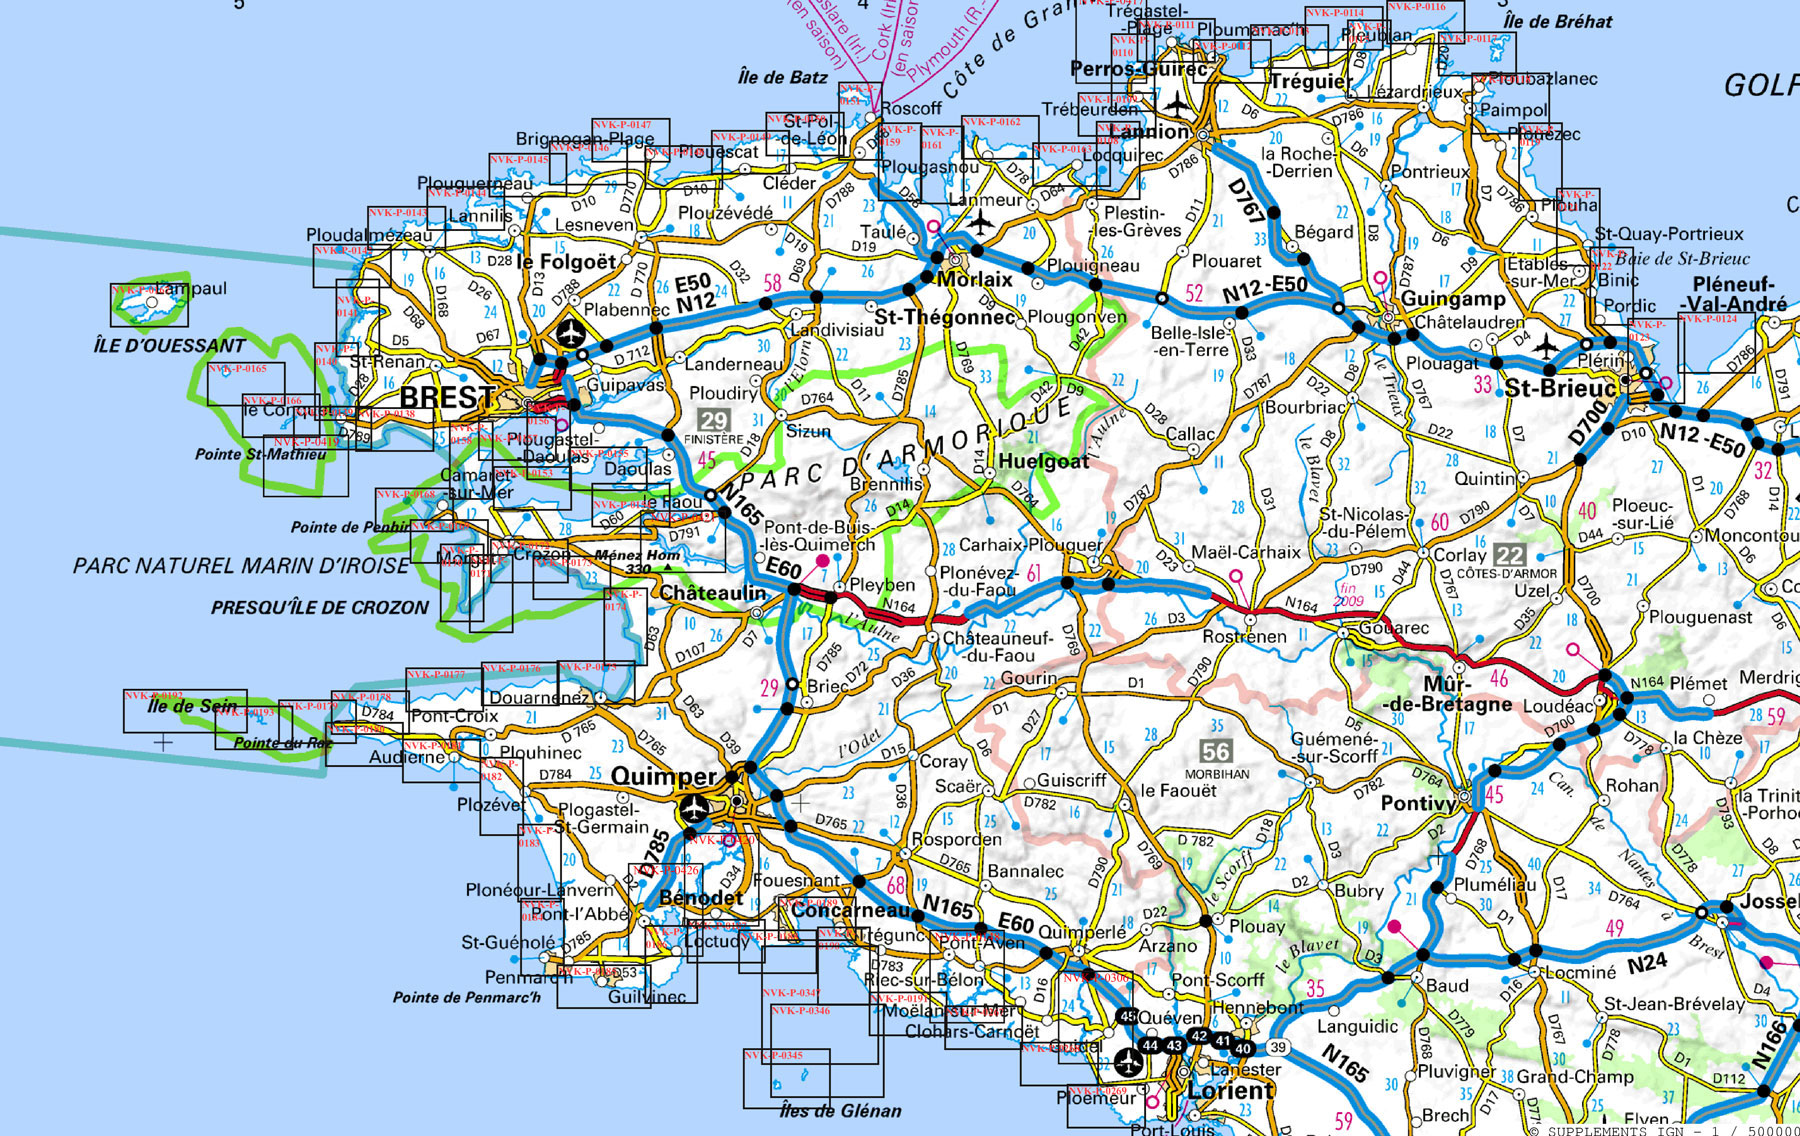 Carte des routes nationales en Bretagne